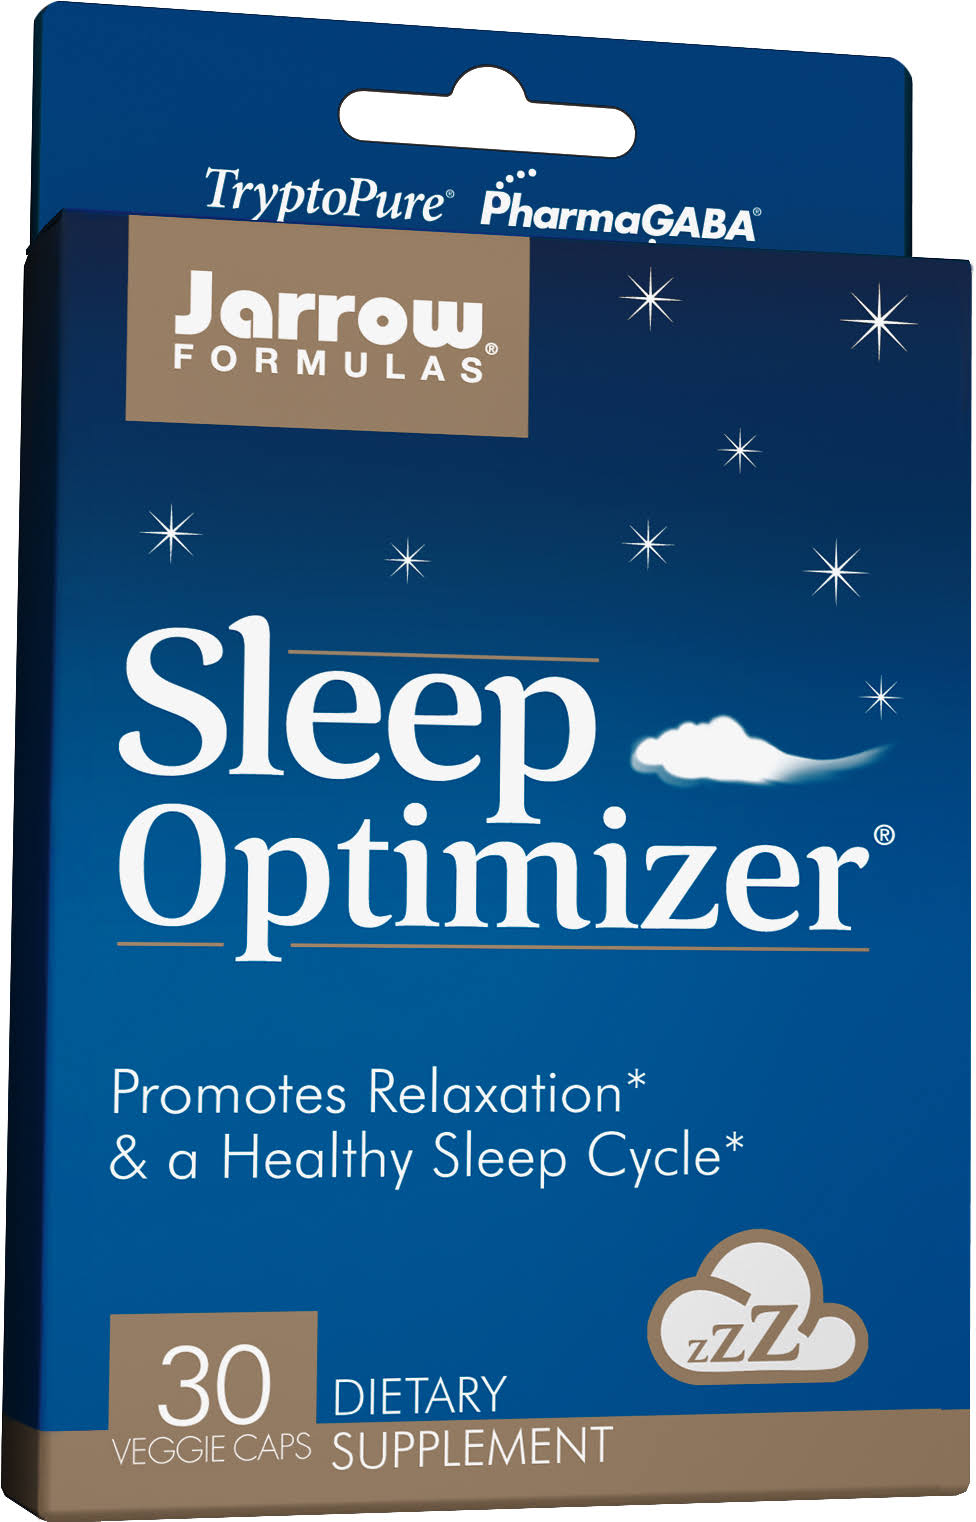 Jarrow Formulas Sleep Optimizer Supplement - 30 Capsules